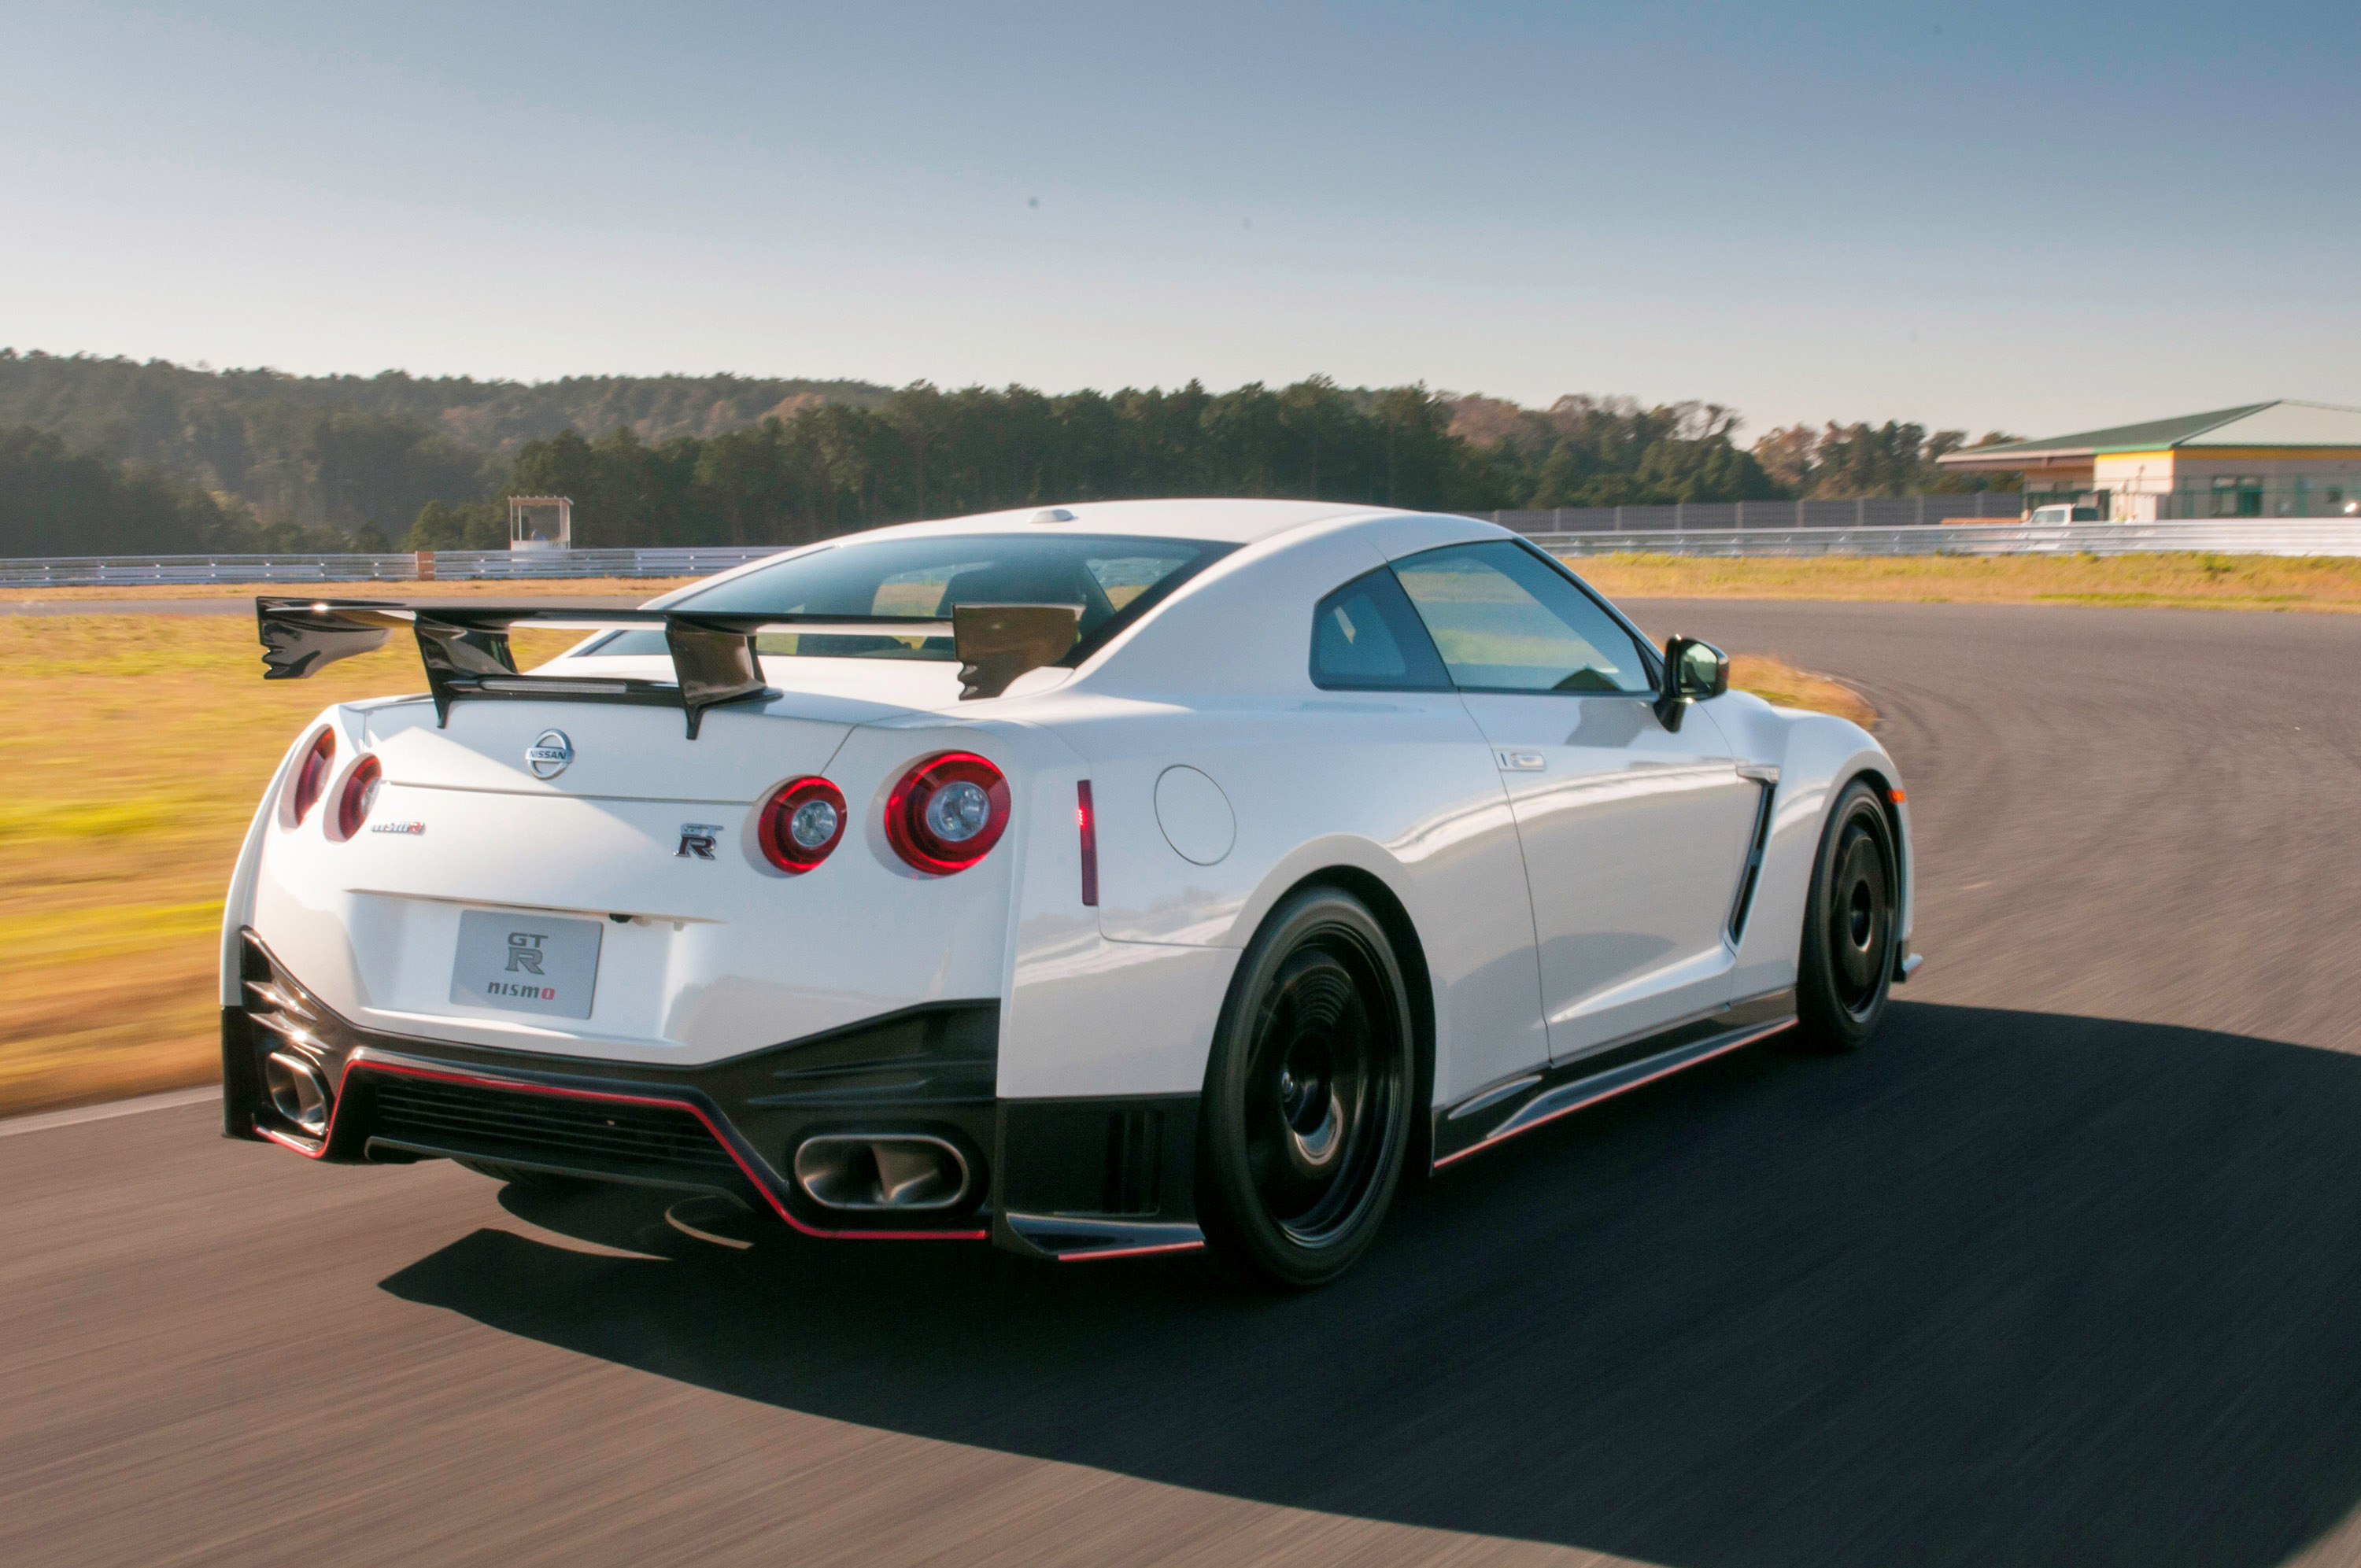 2014 nissan gt r nismo eu spec 600hp. Black Bedroom Furniture Sets. Home Design Ideas